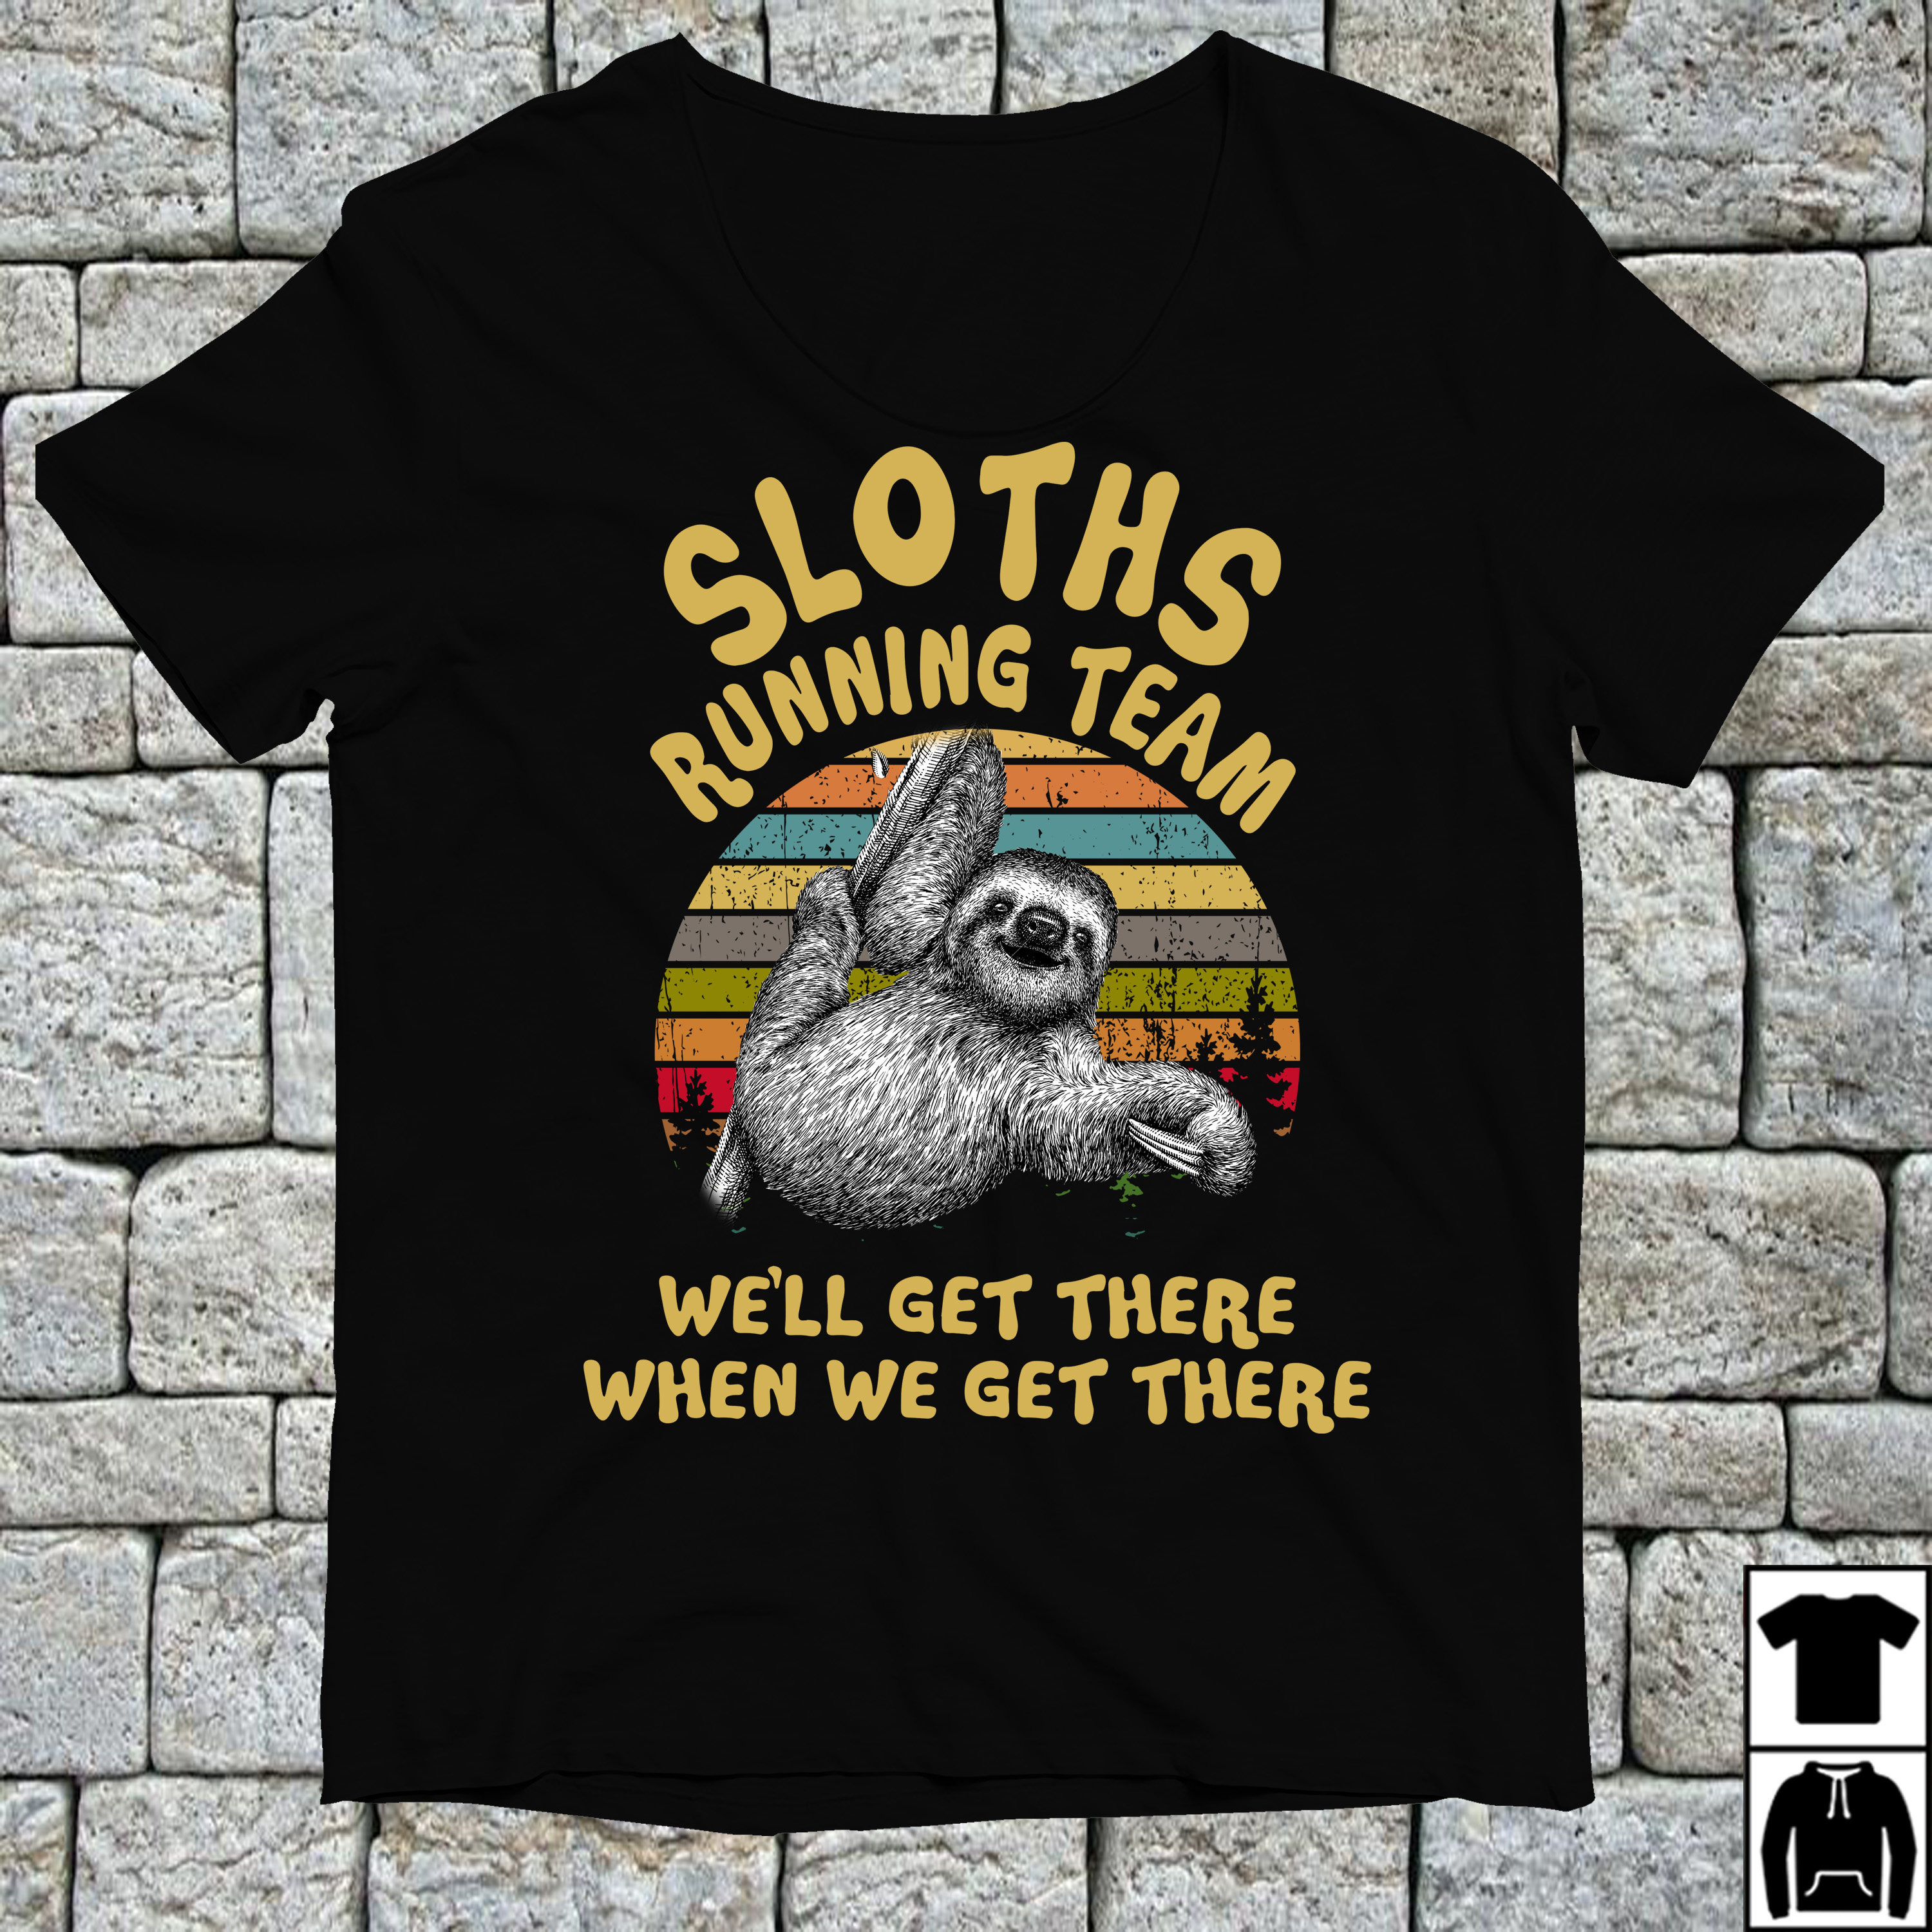 Sloths running team we'll get there when we get there vintage shirt